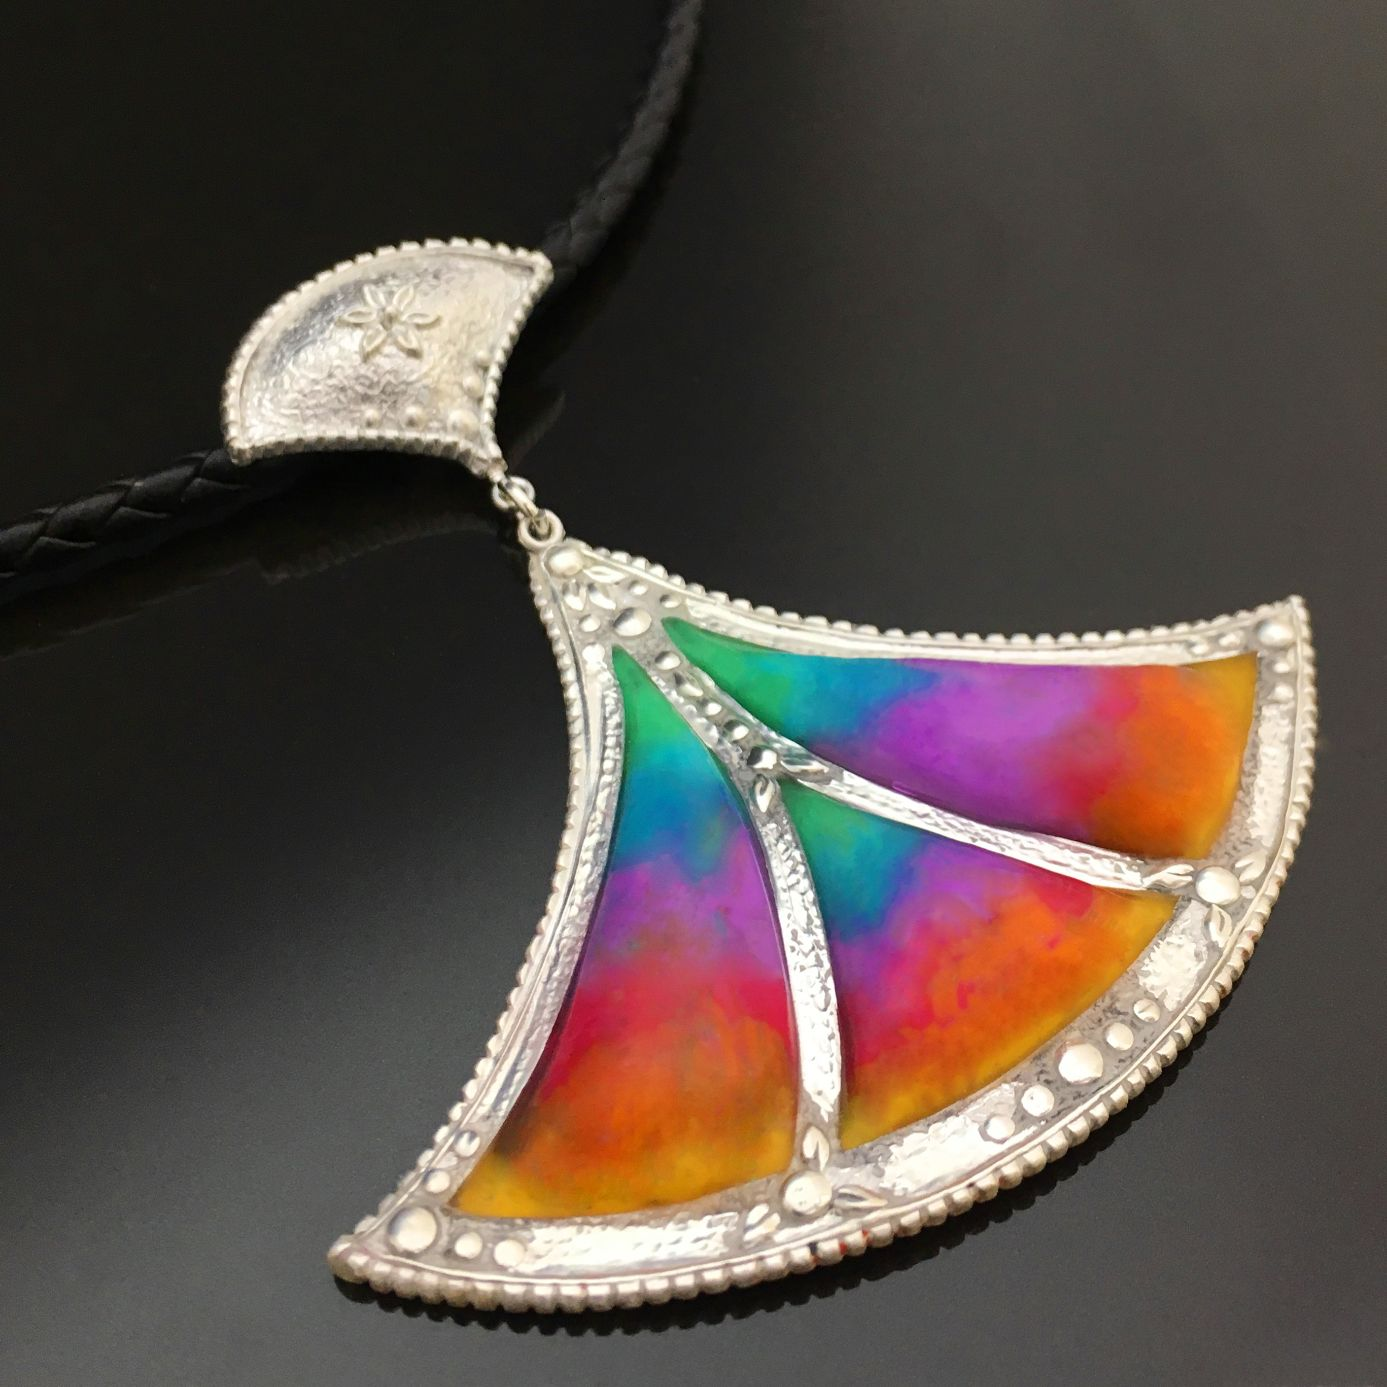 Verre Églomisé Lotus Pendant by Tracey Spurgin of Craftworx Jewellery Workshops